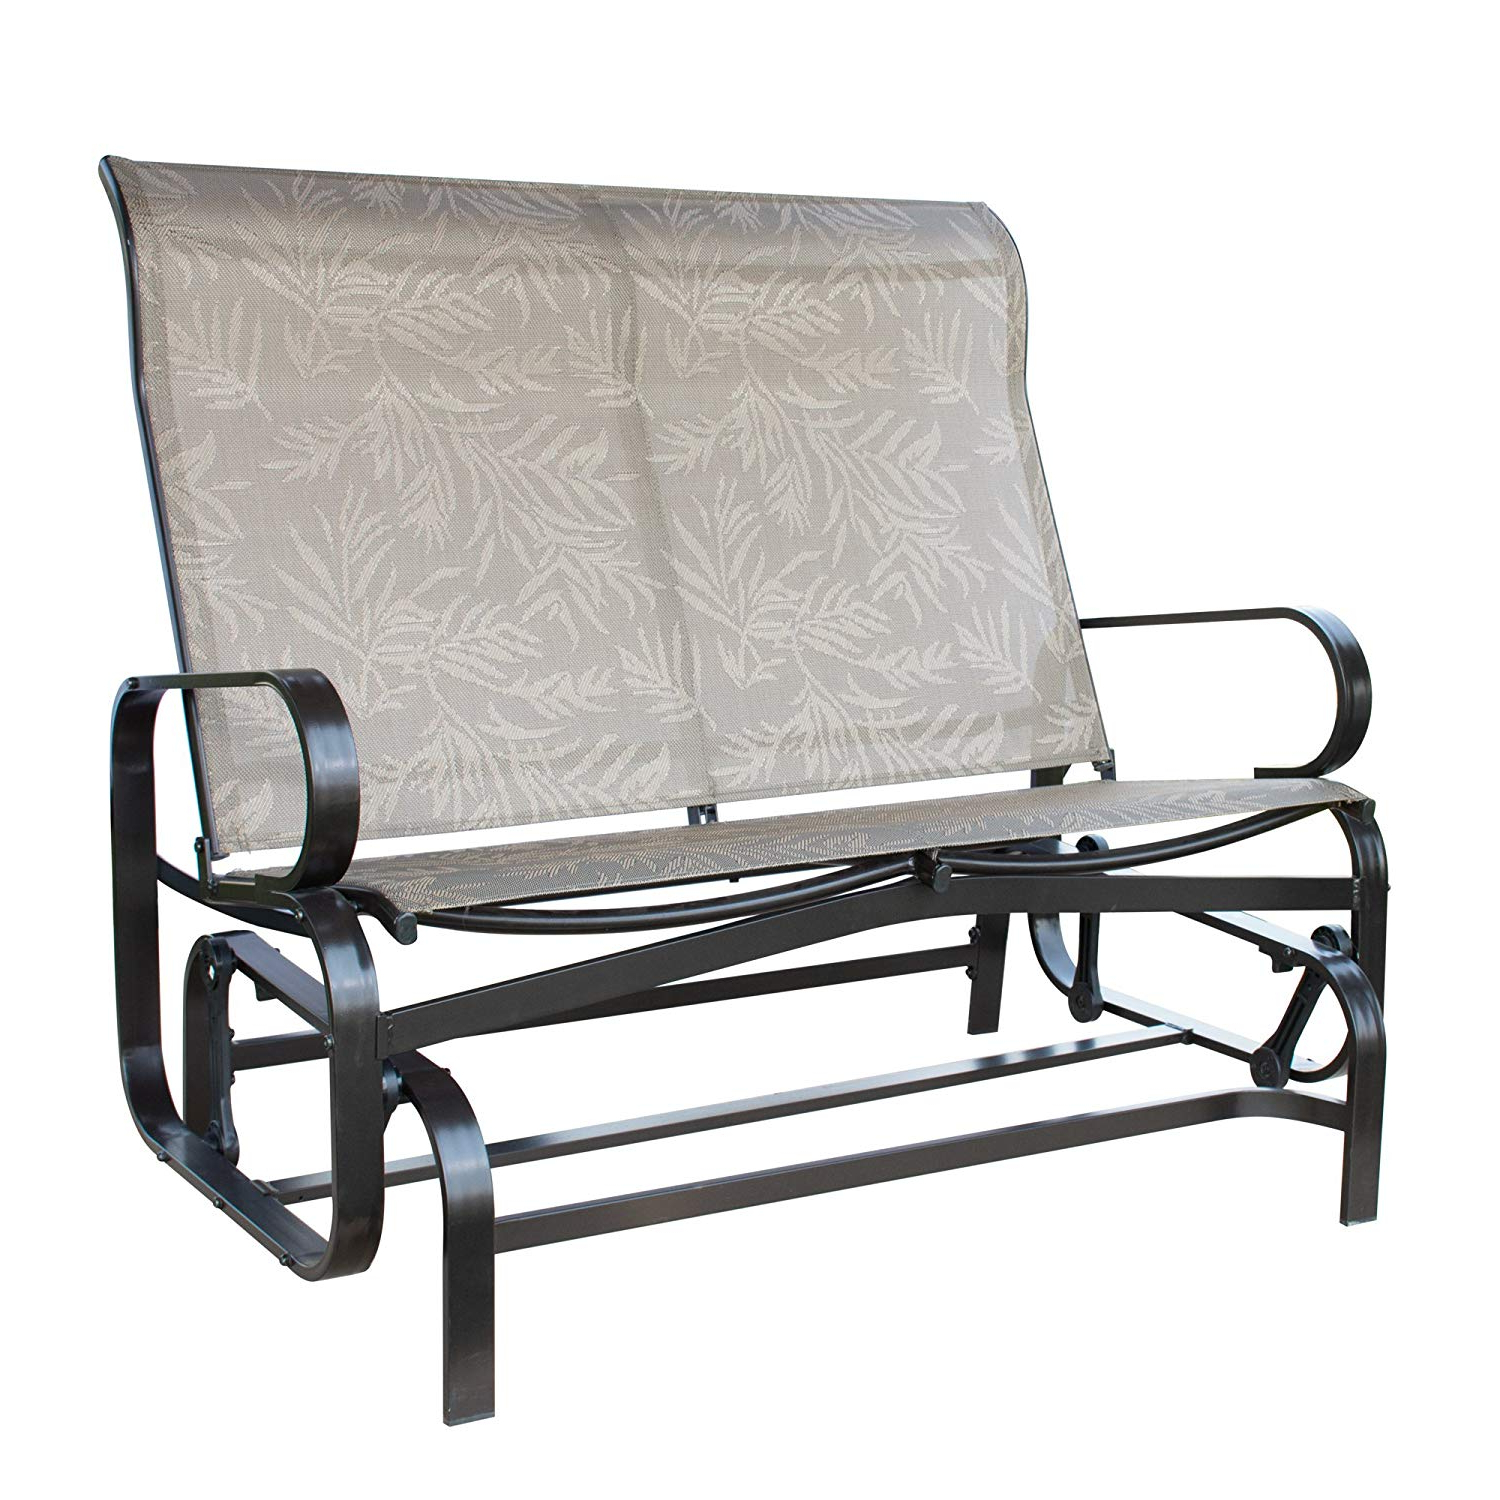 Preferred 2 Person Loveseat Chair Patio Porch Swings With Rocker Pertaining To Patiopost Glider Bench Outdoor 2 Person Loveseat Chair Patio Porch Swing With Rocker – Walmart (View 6 of 25)